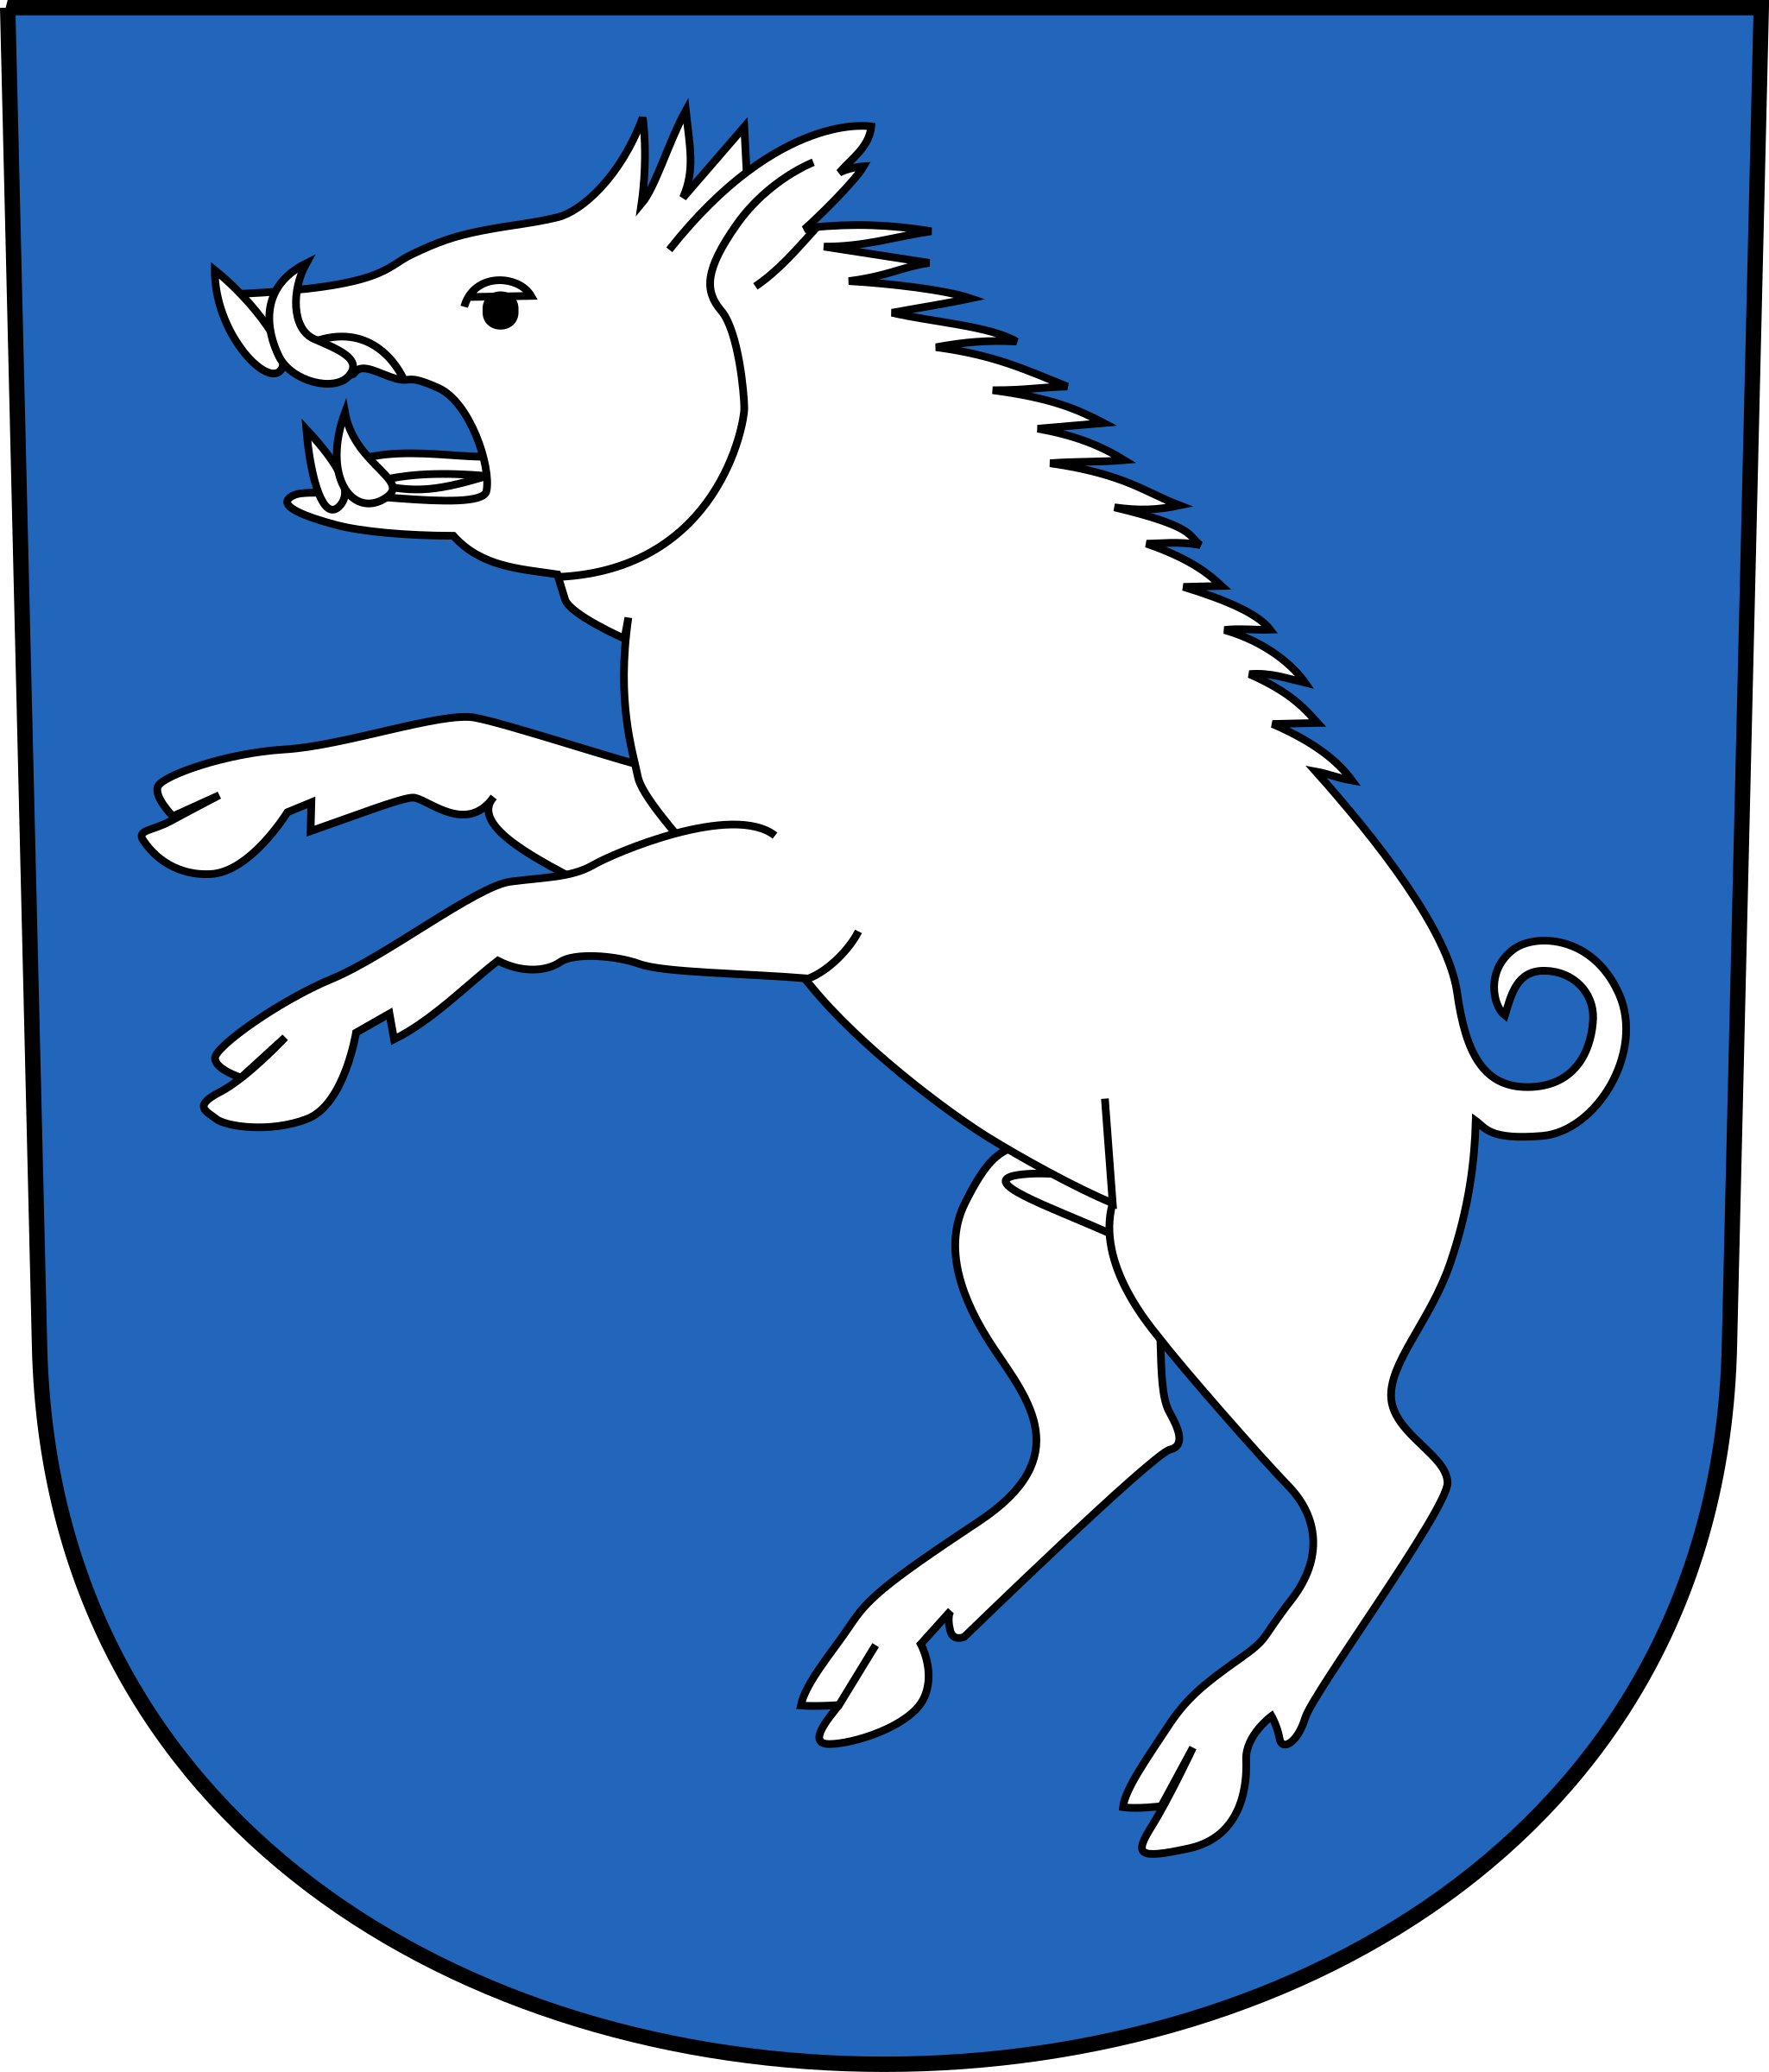 Berg am Irchel - Coat of arms 1 by wipp